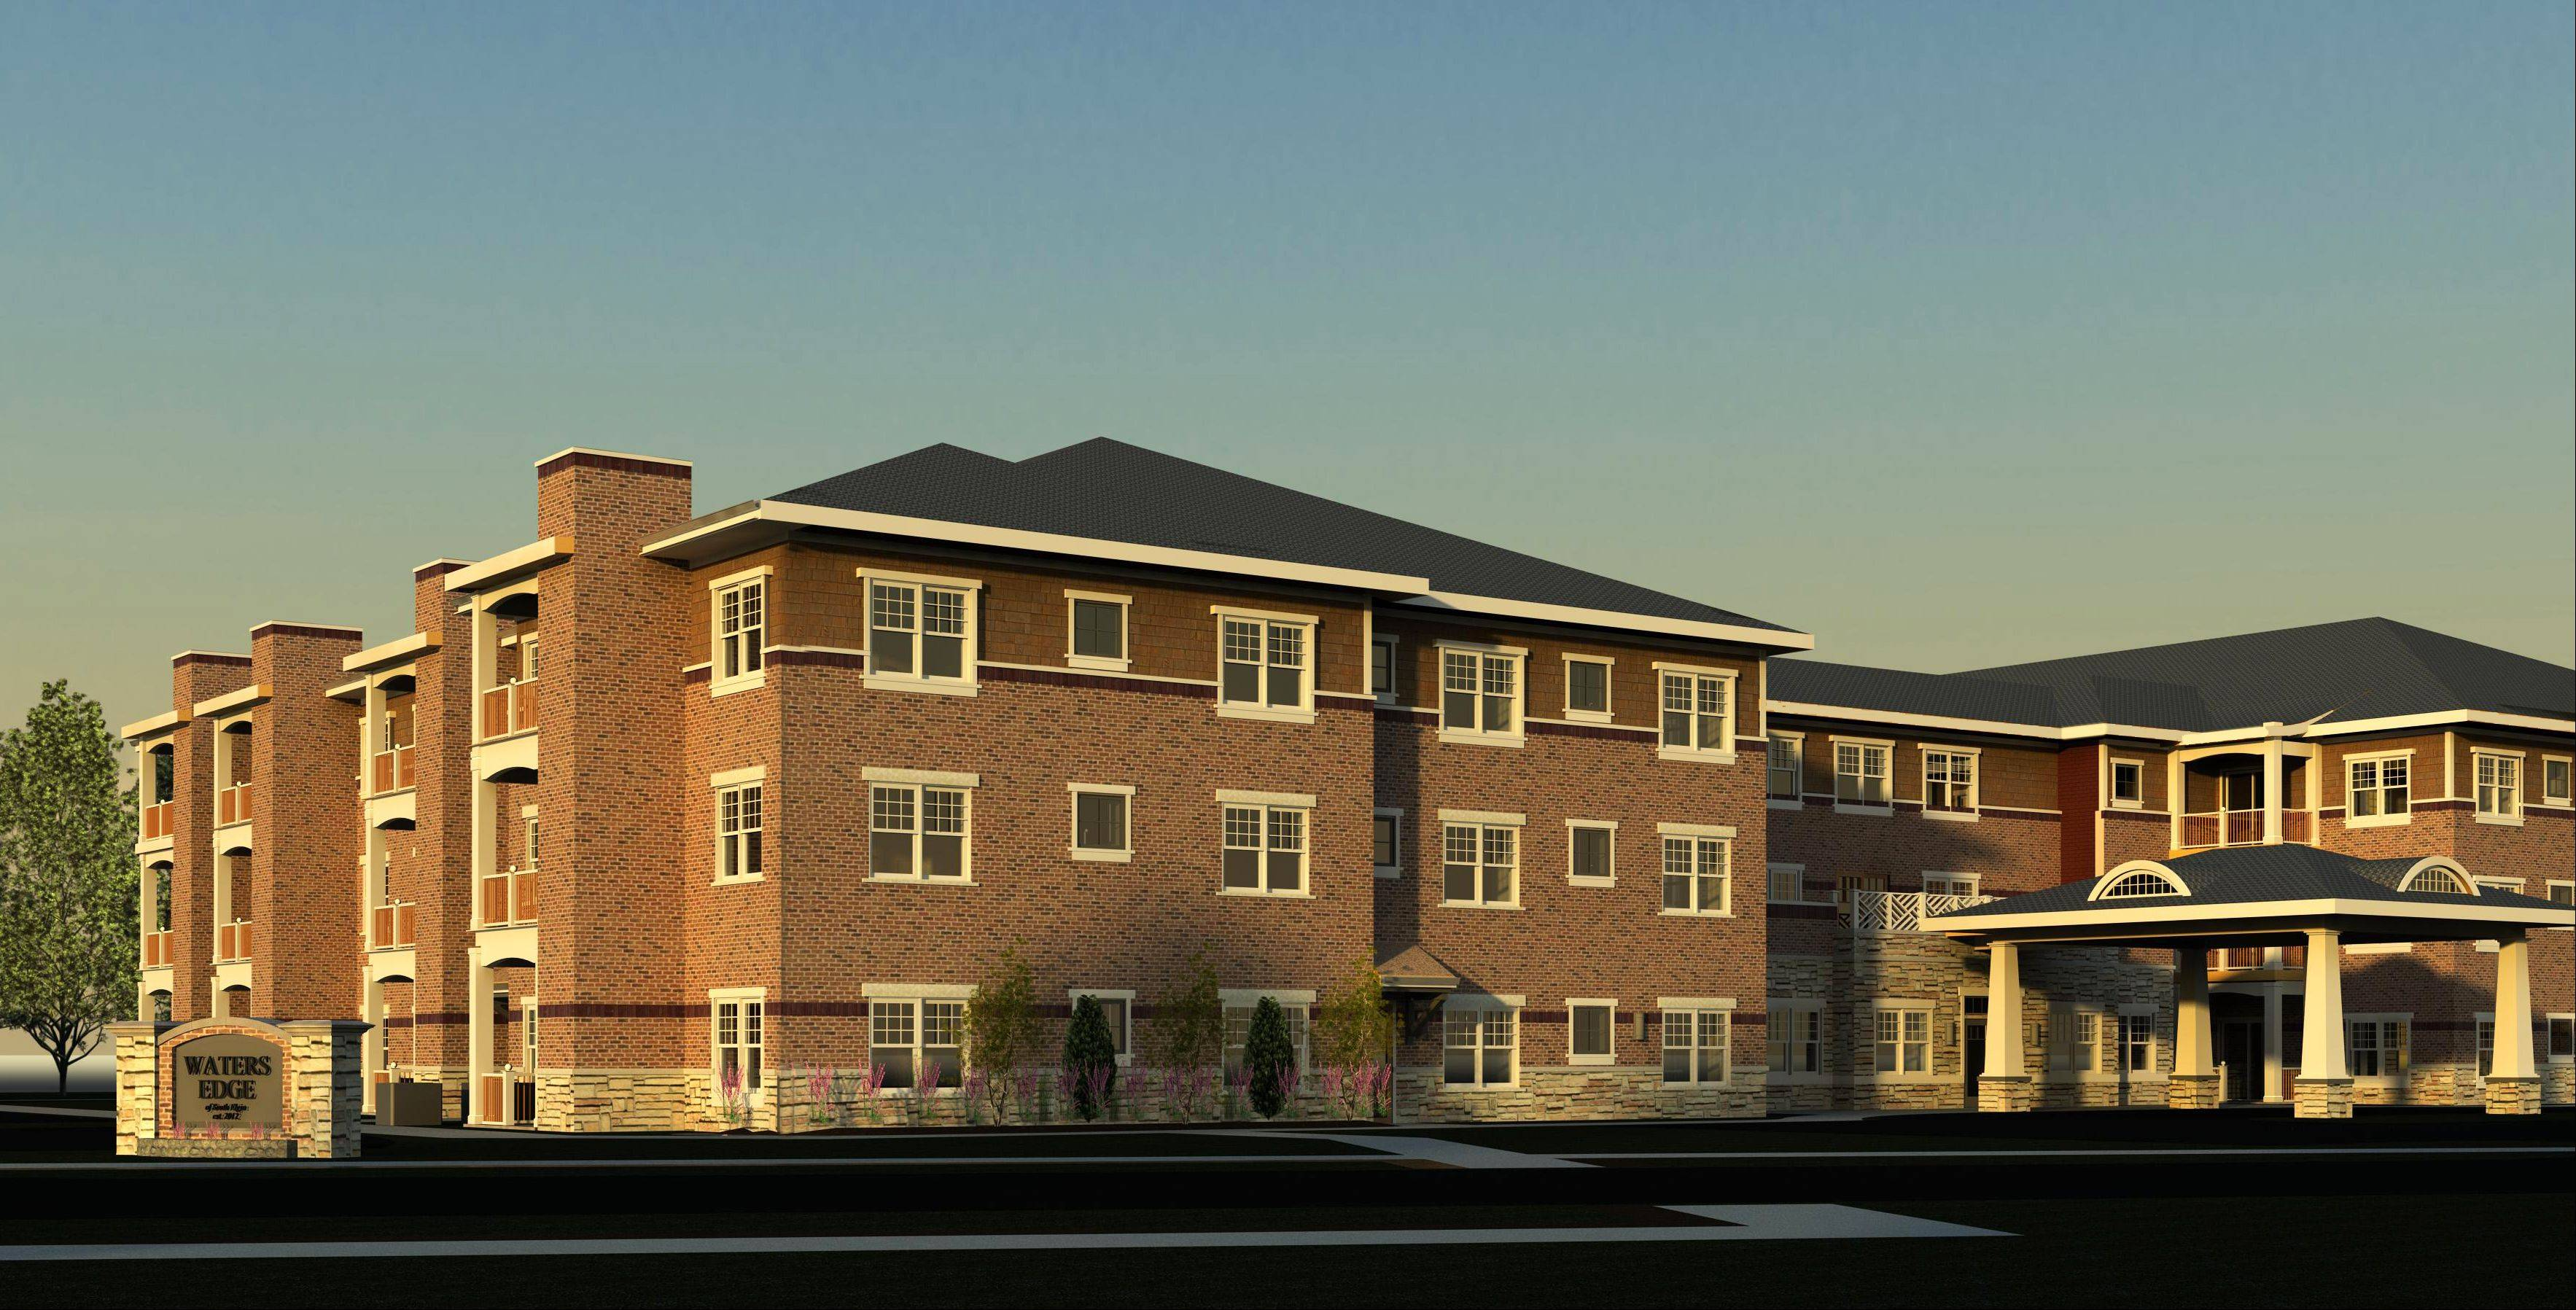 The proposed Water's Edge of South Elgin would have 50 apartments split between low-income housing and income for people with disabilities, mental illness and special needs.